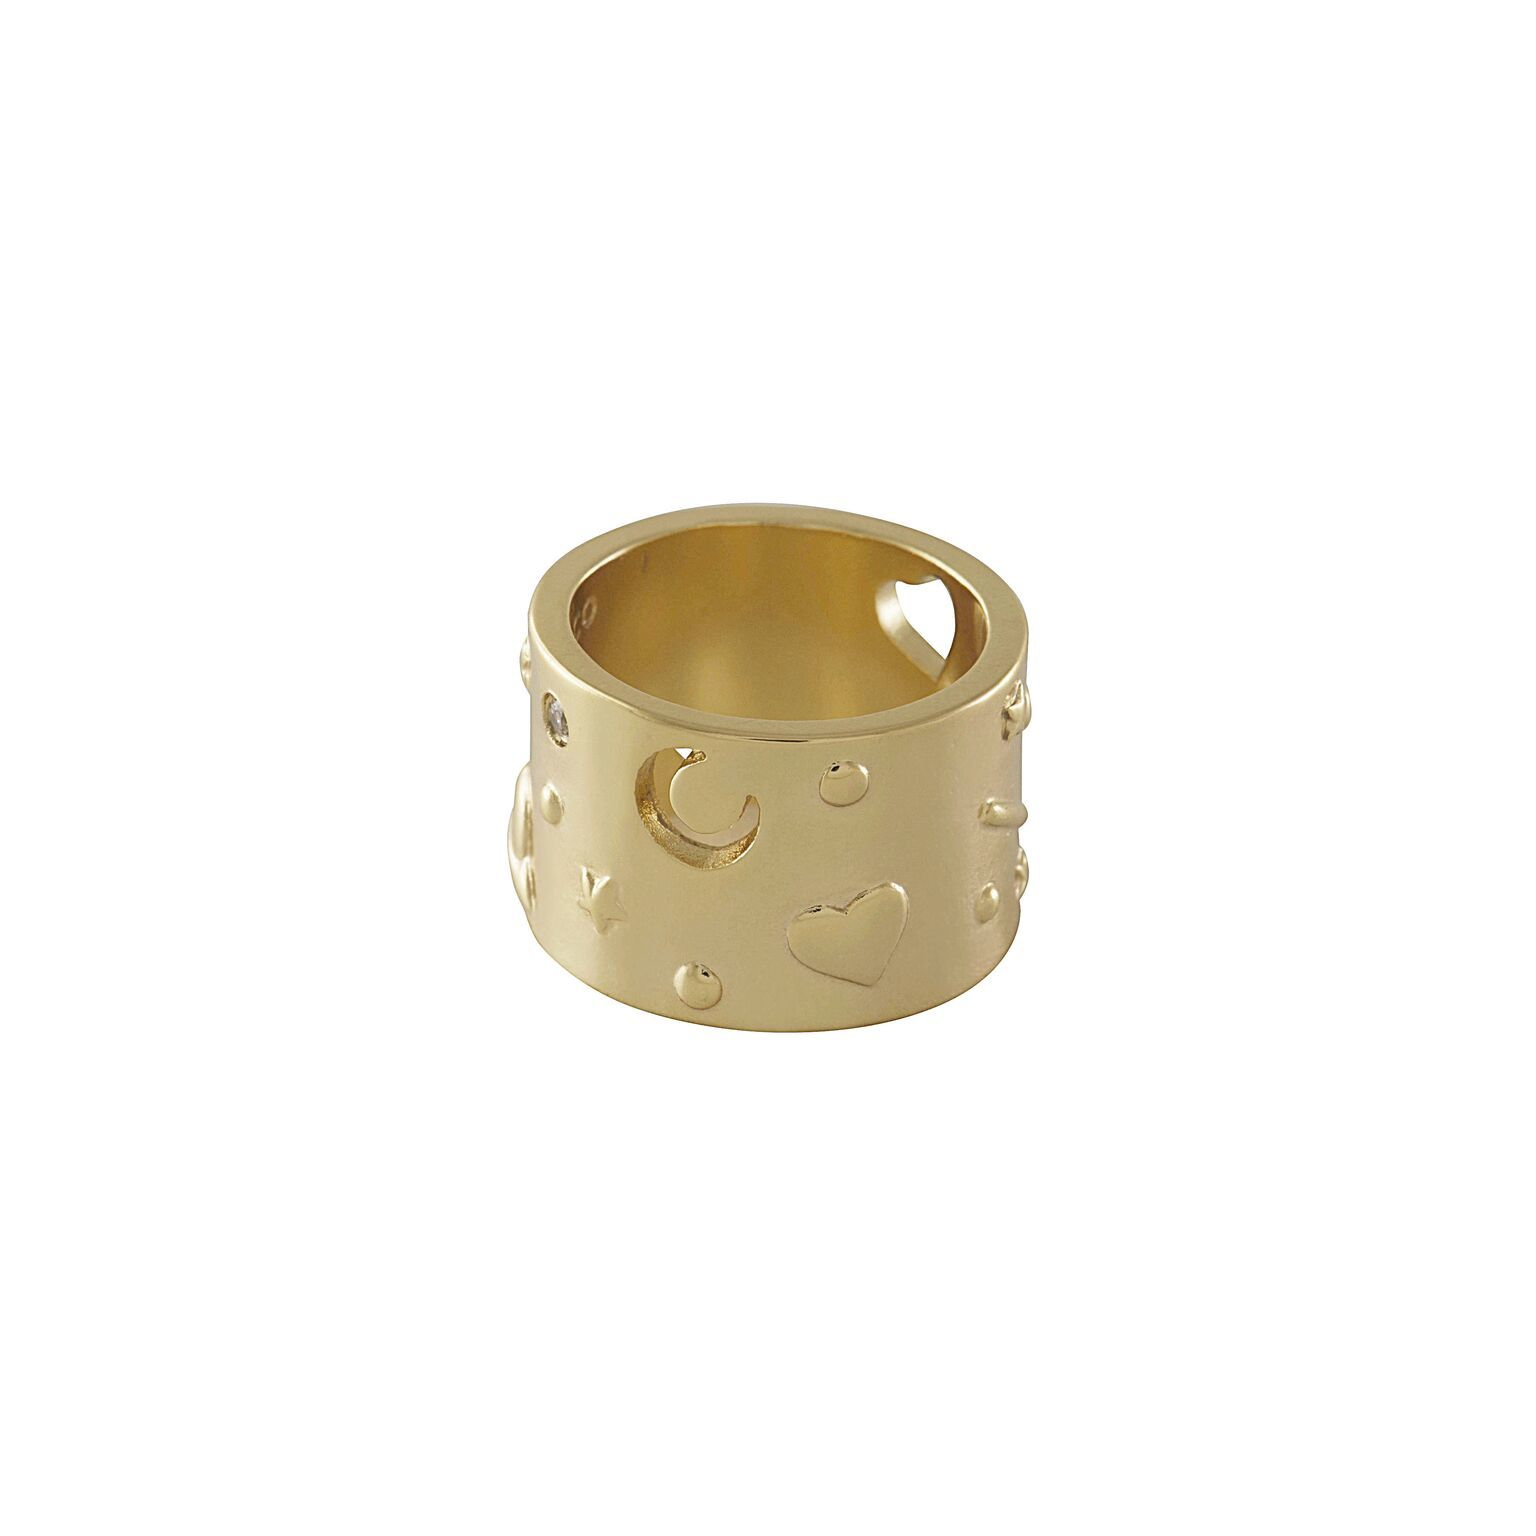 Wanderlust + Co: Aleya Gold Ring (Size 8) image